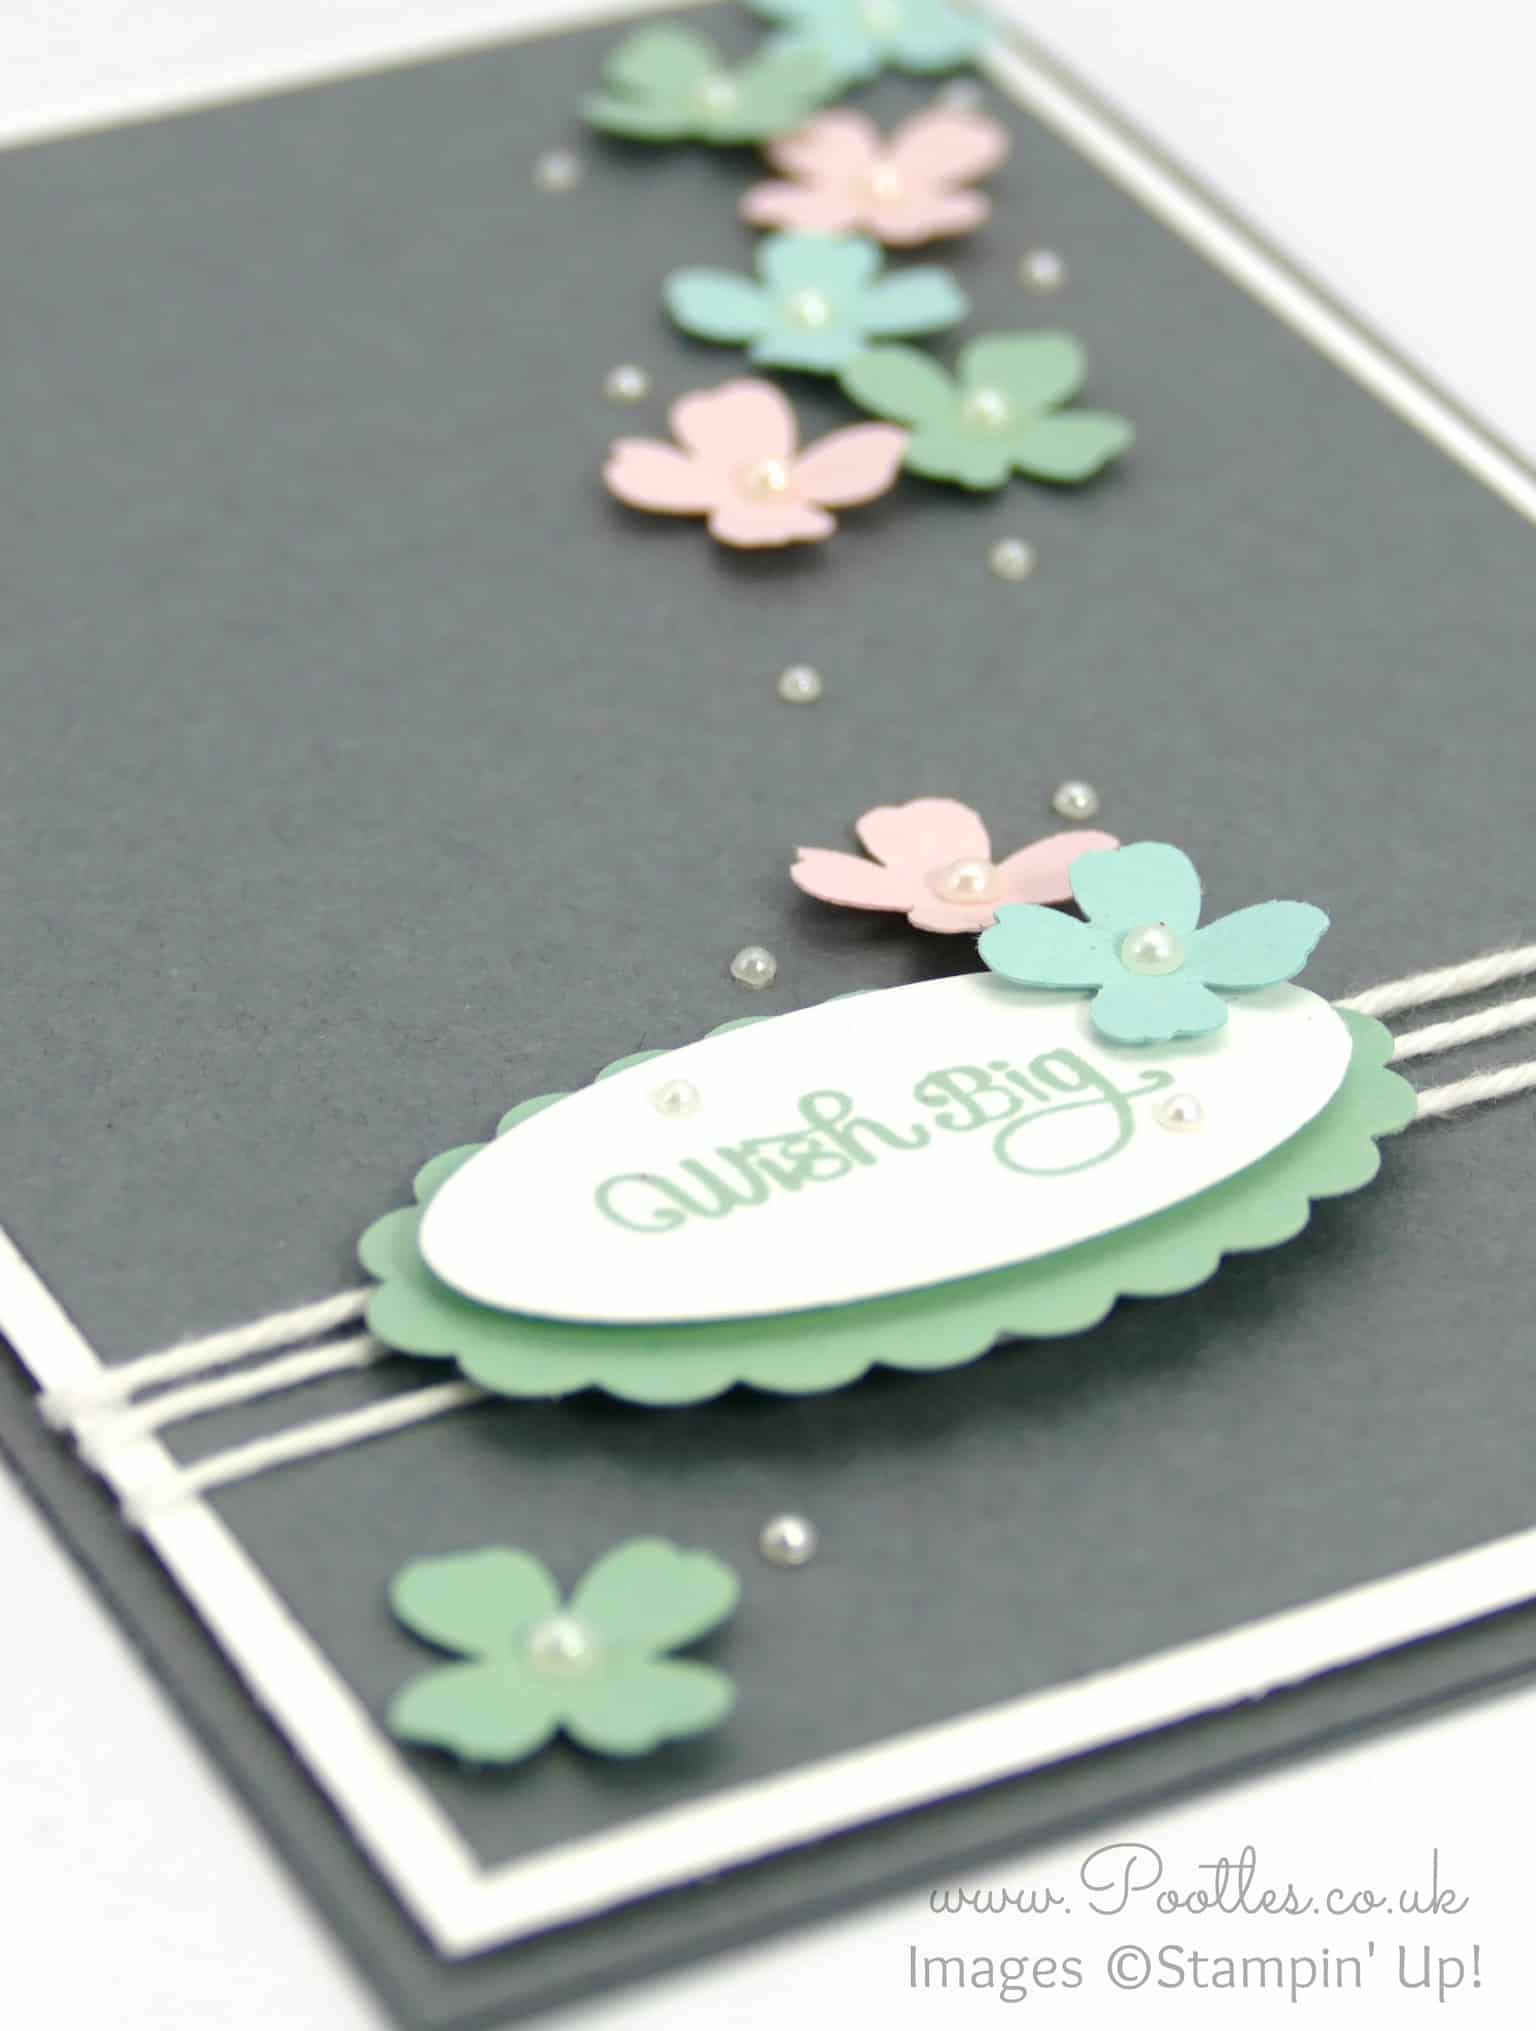 Greys and Pastels make for pretty cards!